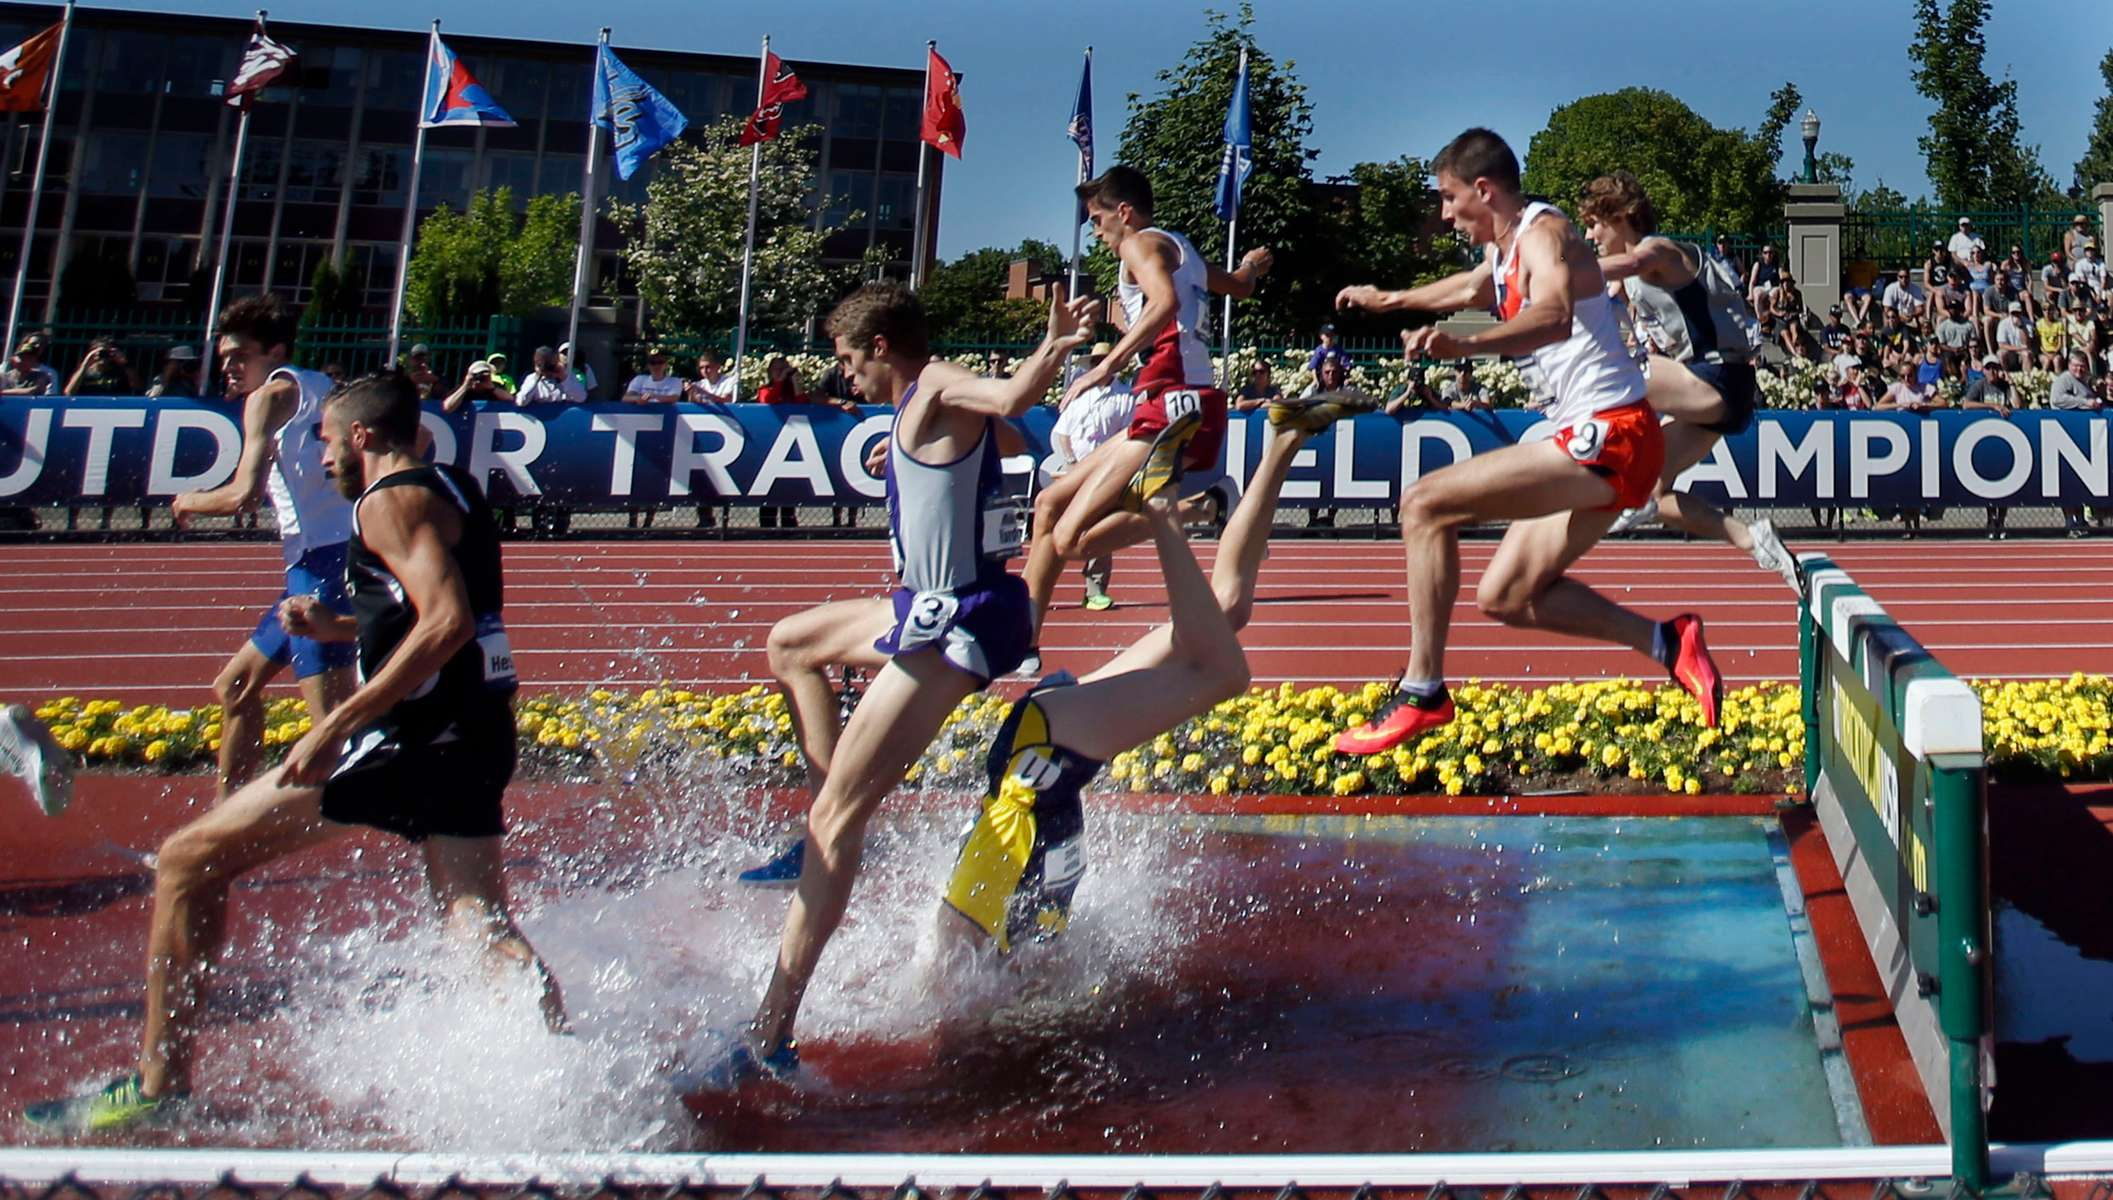 Michigan's Mason Ferlic nosedives into the water jump during the 3,000 steeplechase on the third day of the NCAA Track and Field Championships at Hayward Field in Eugene on Friday, June 12, 2015. Ferlic was unhurt in the incident and later tweeted out a photo of himself holding the photo that ran a full page in The Register-Guard sports section.